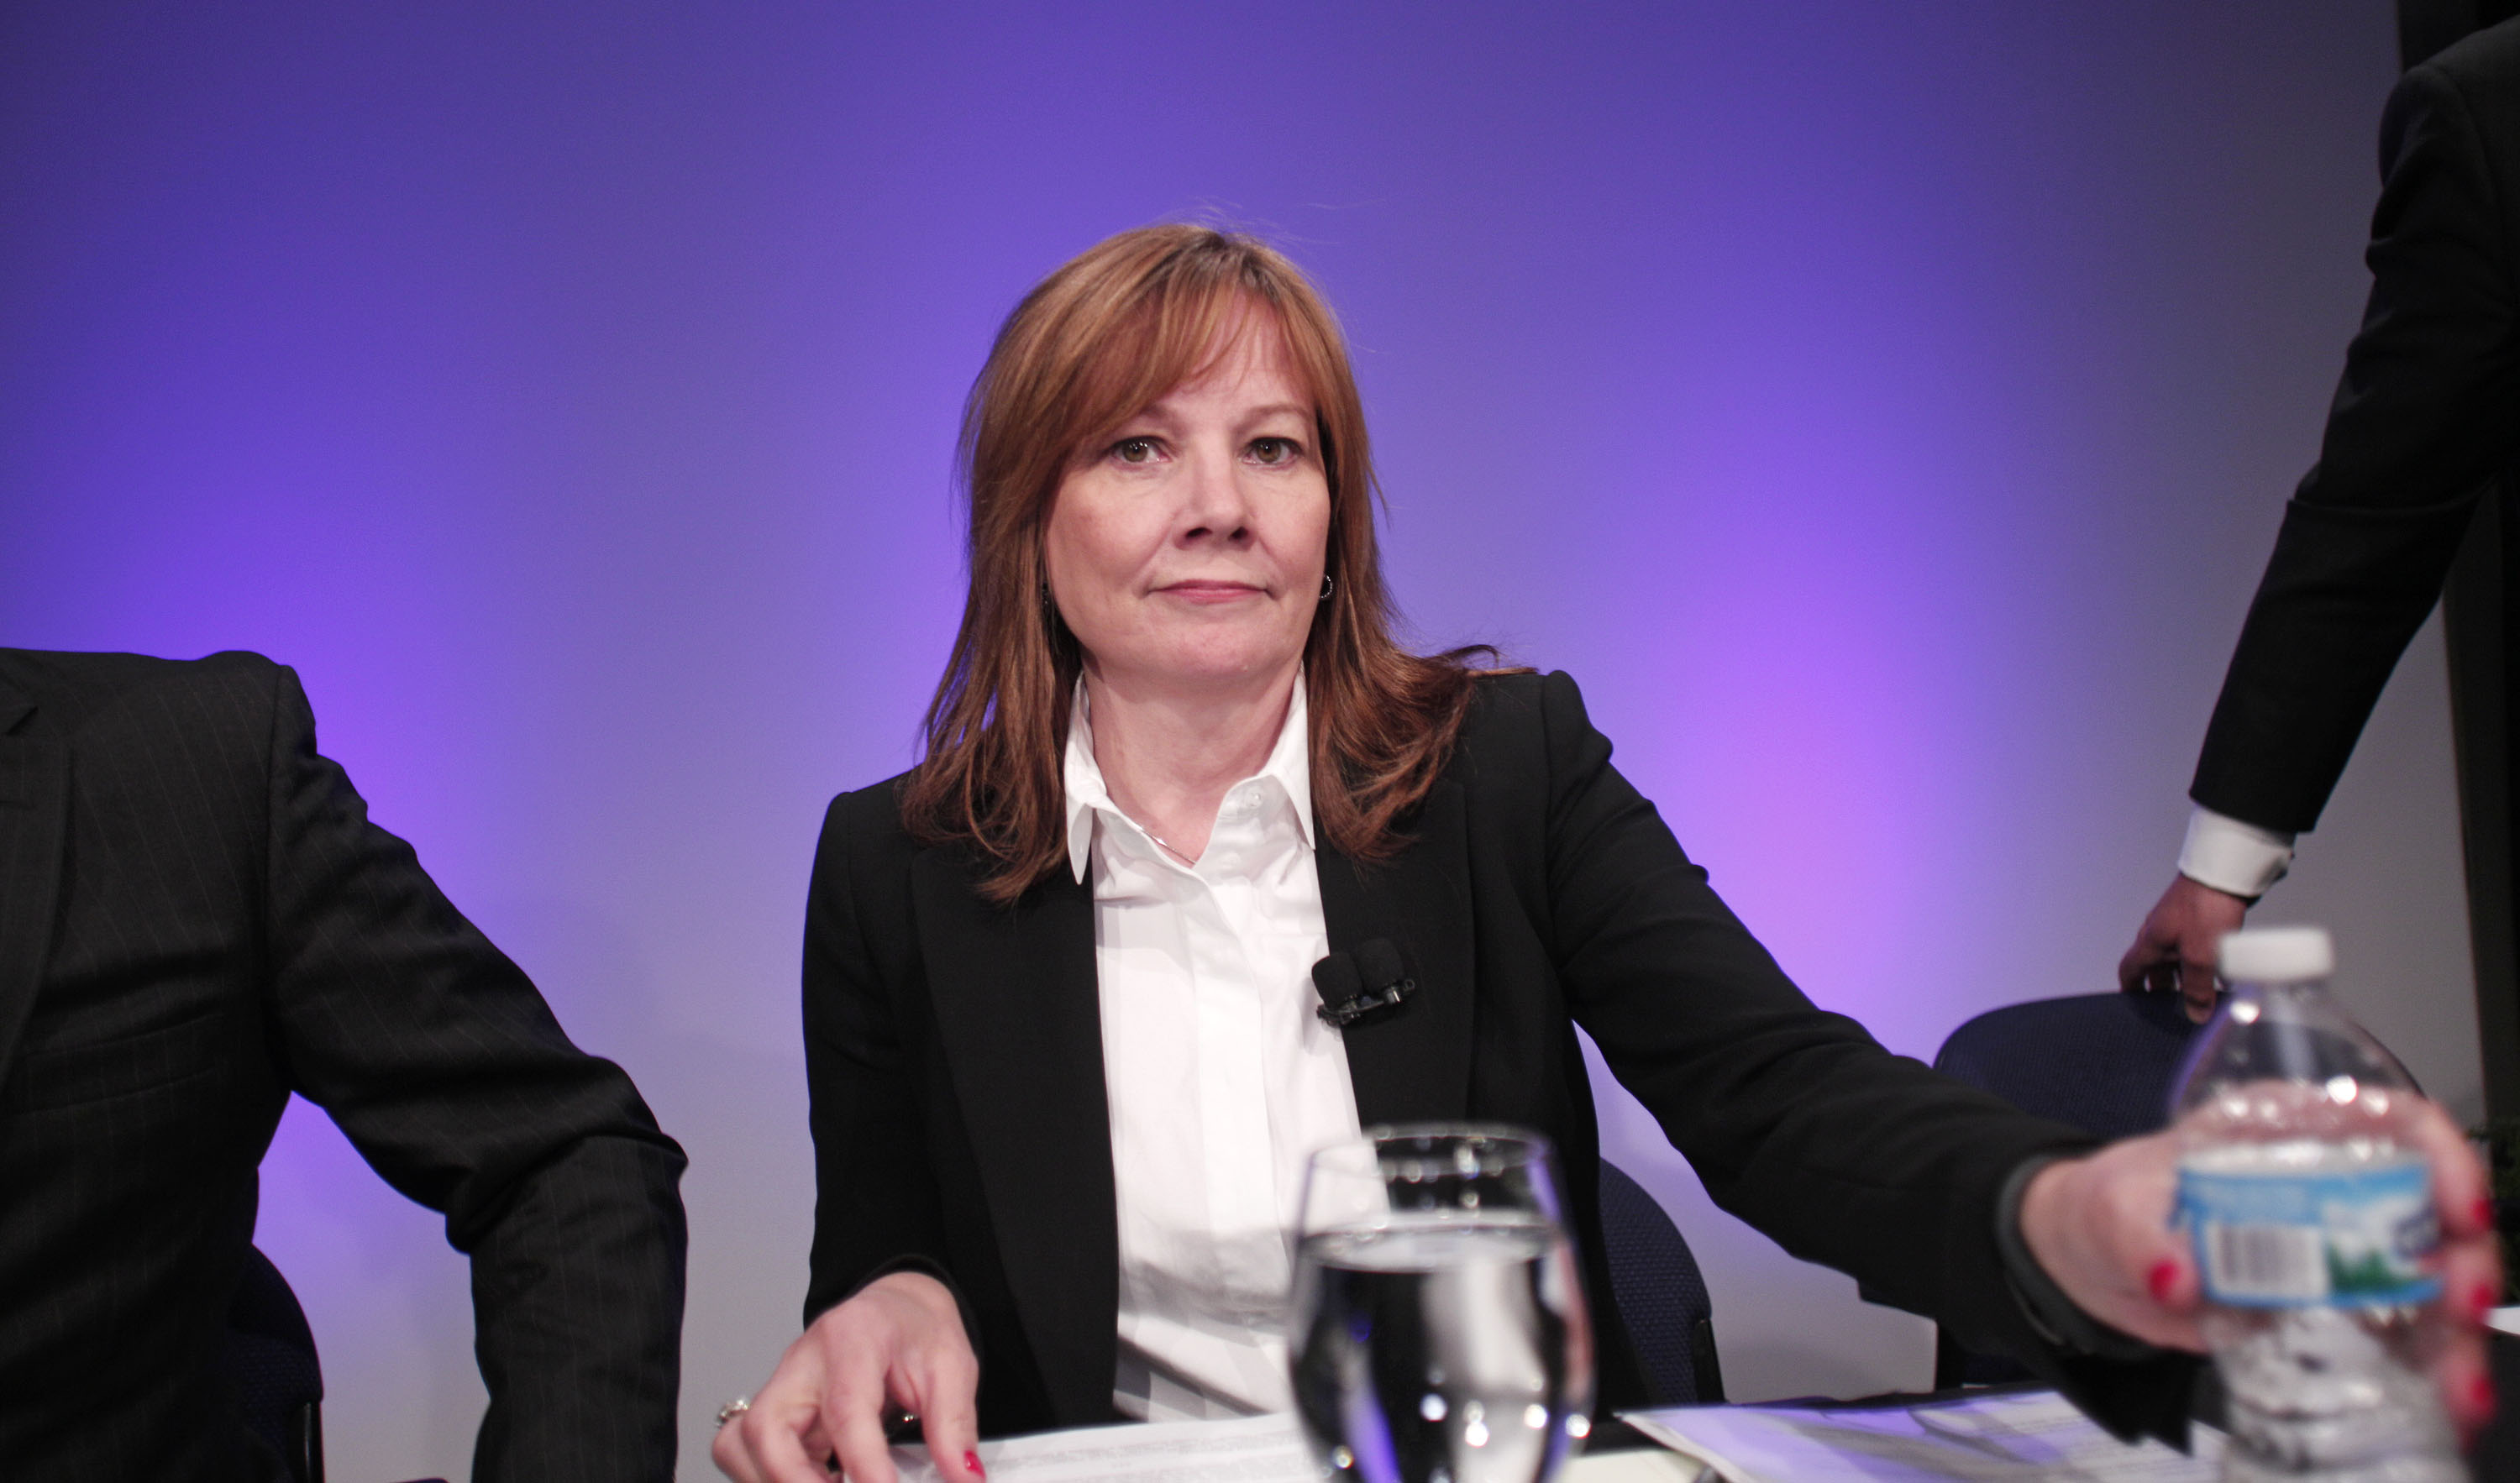 General Motors Chief Executive Officer Mary Barra sits for a press conference at the General Motors Technical Center on June 5, 2014 in Warren, Mich.